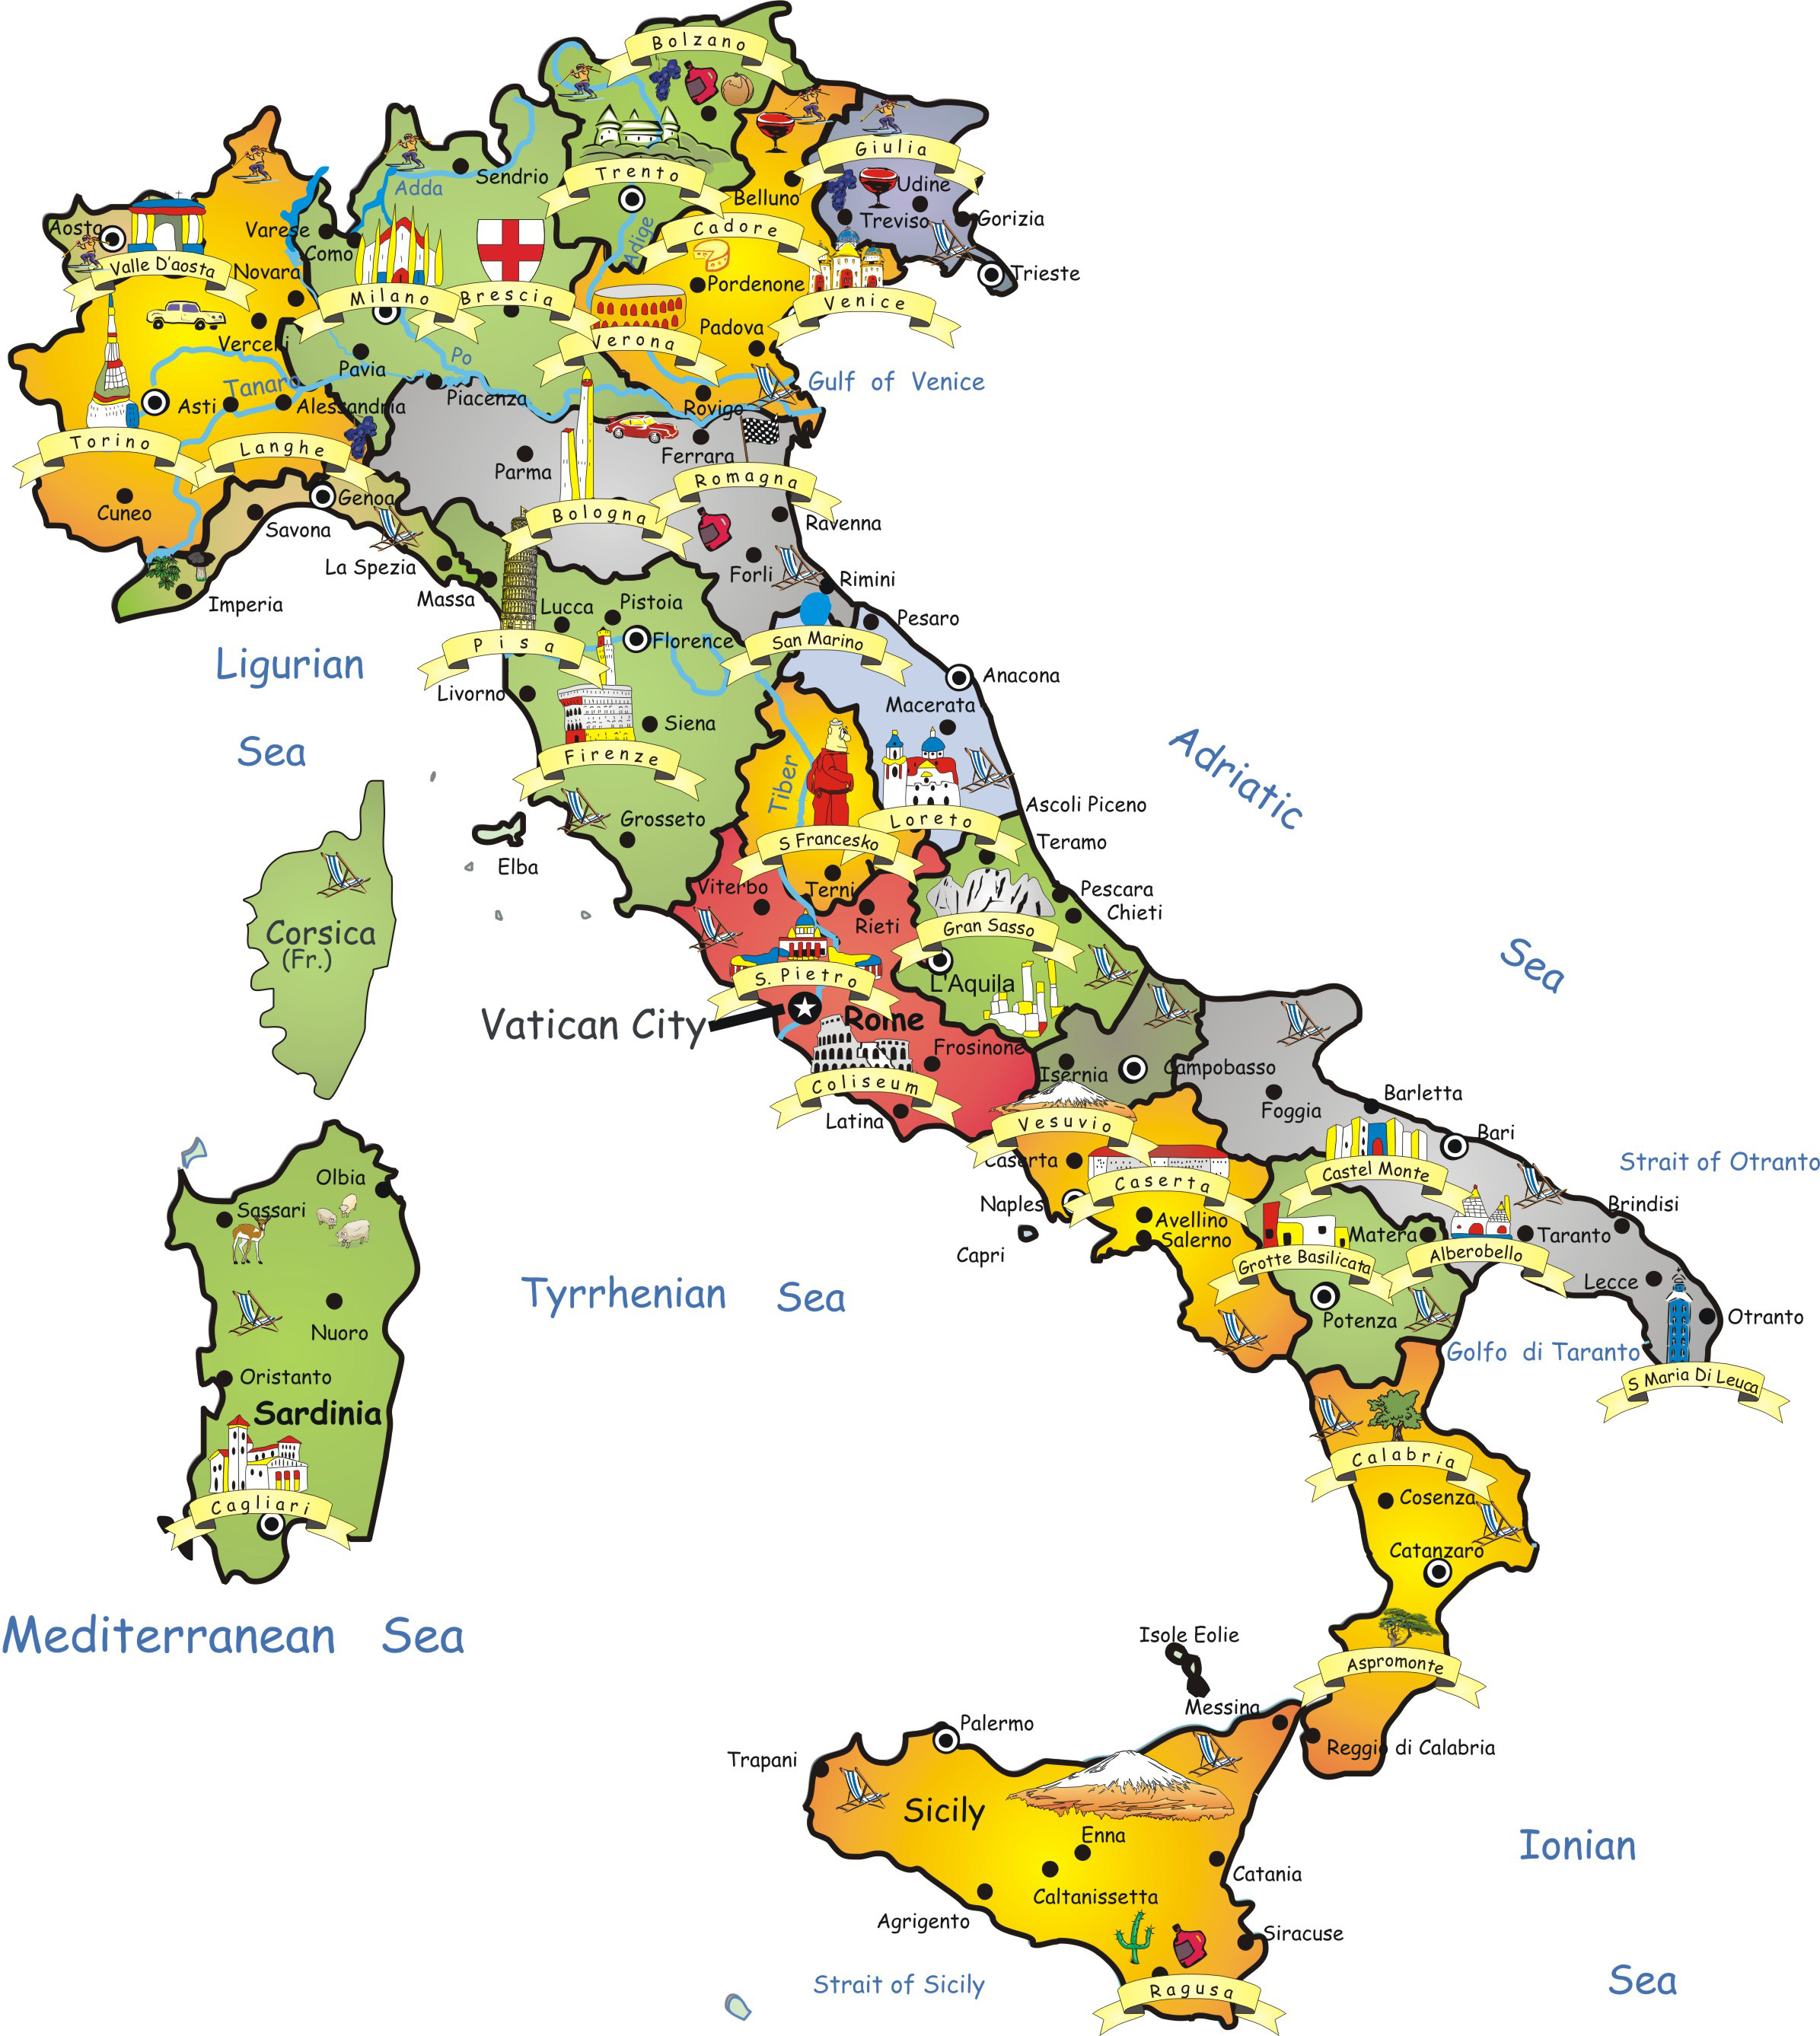 Map Of Cities Italy.Travel Map Of Italy Italy Travel Map Vidiani Com Maps Of All